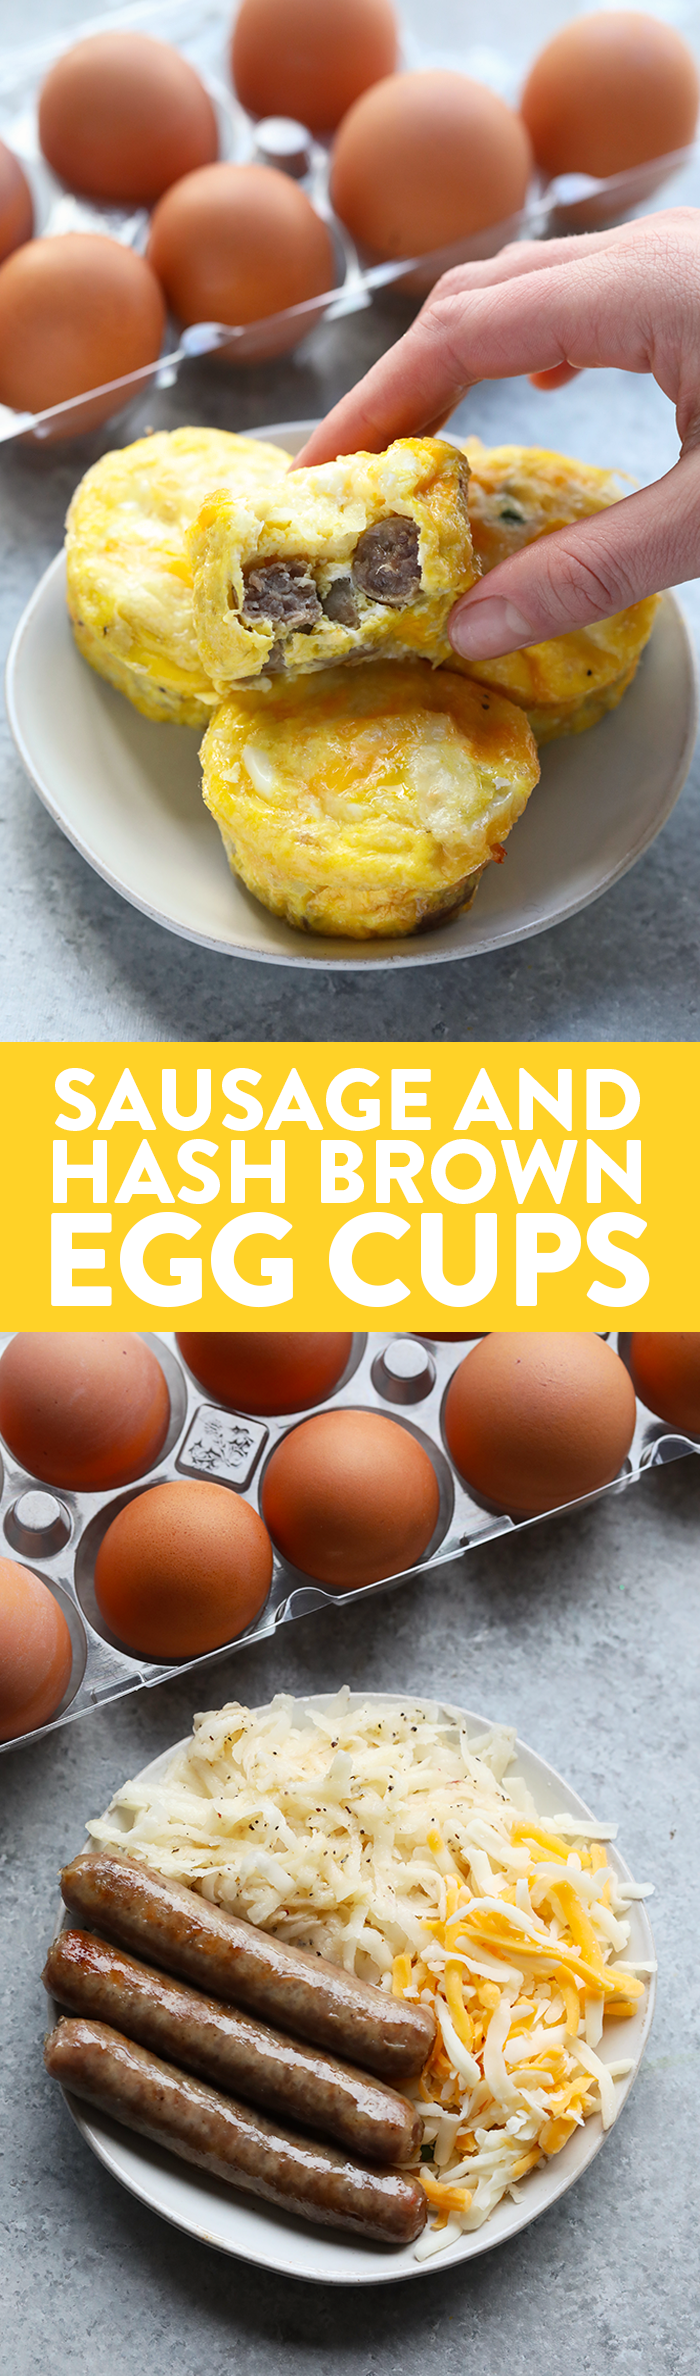 Ingredients for egg cups and finished egg cups with text